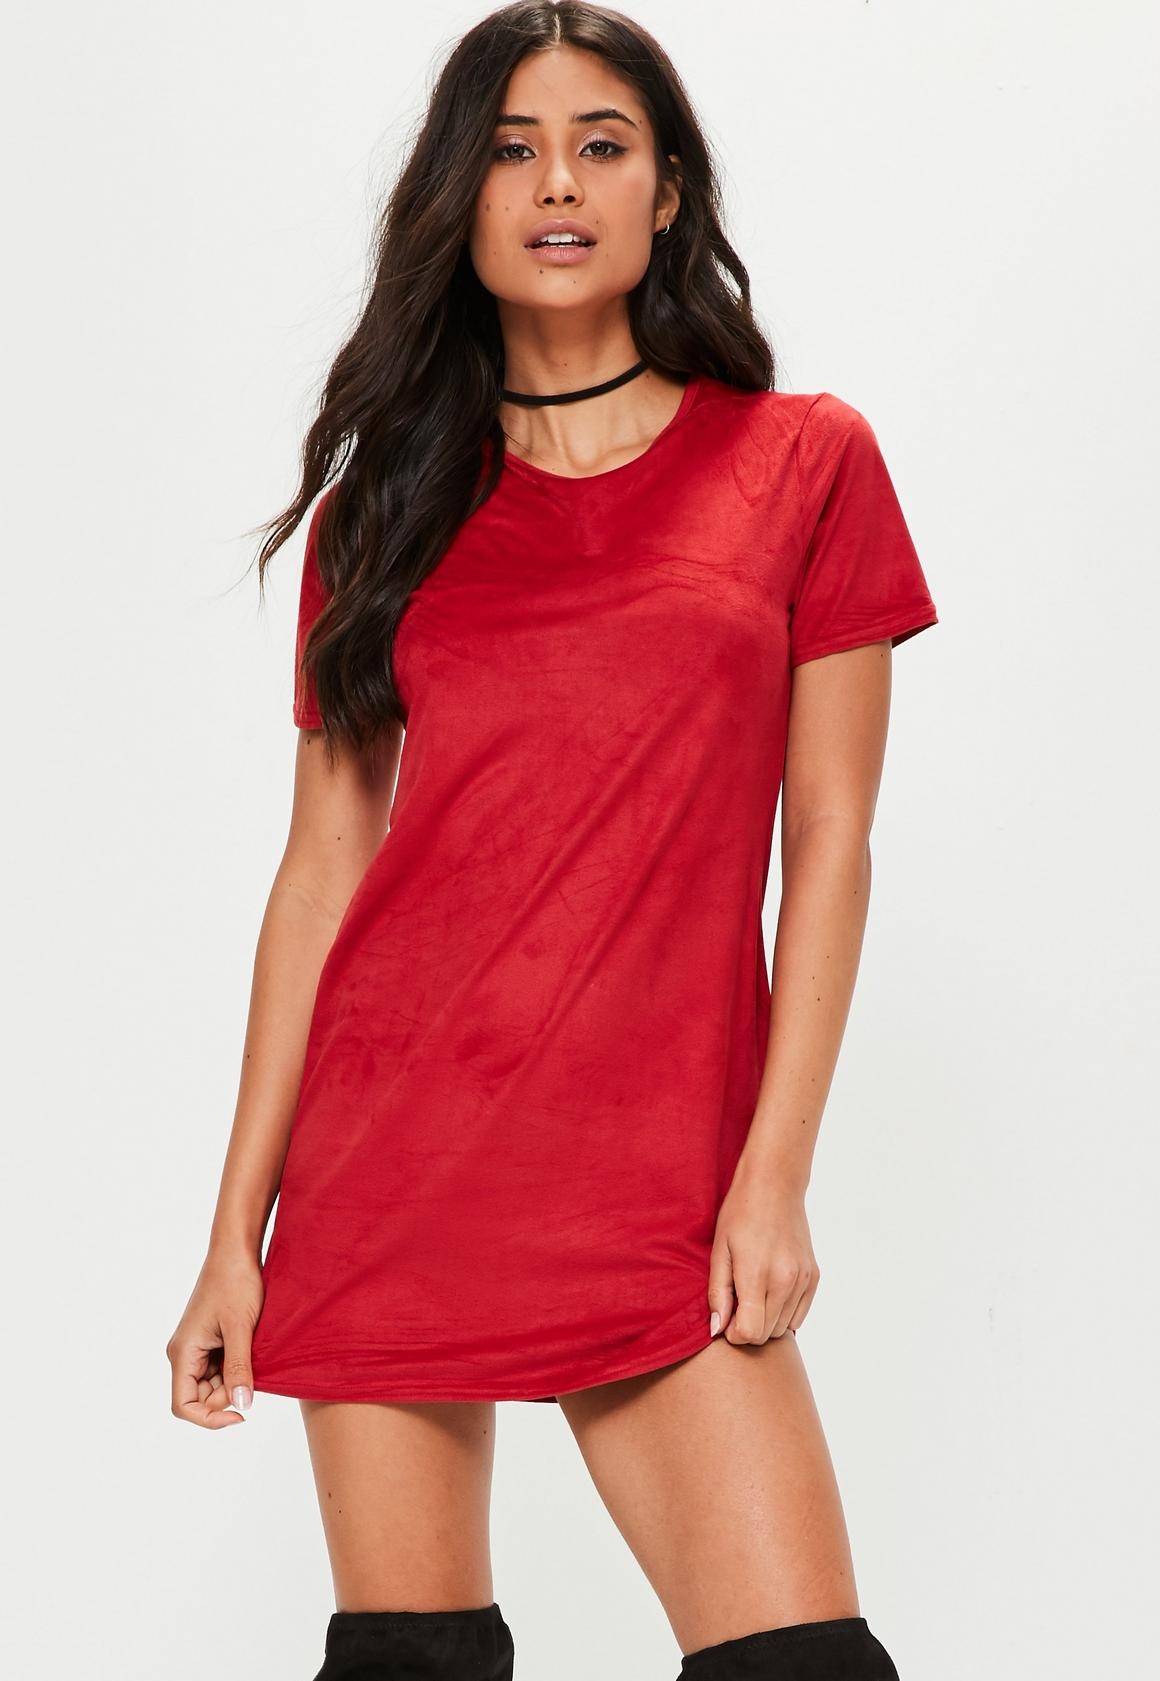 red-faux-suede-t-shirt-dress.jpg?$product-page__zoom--1x$